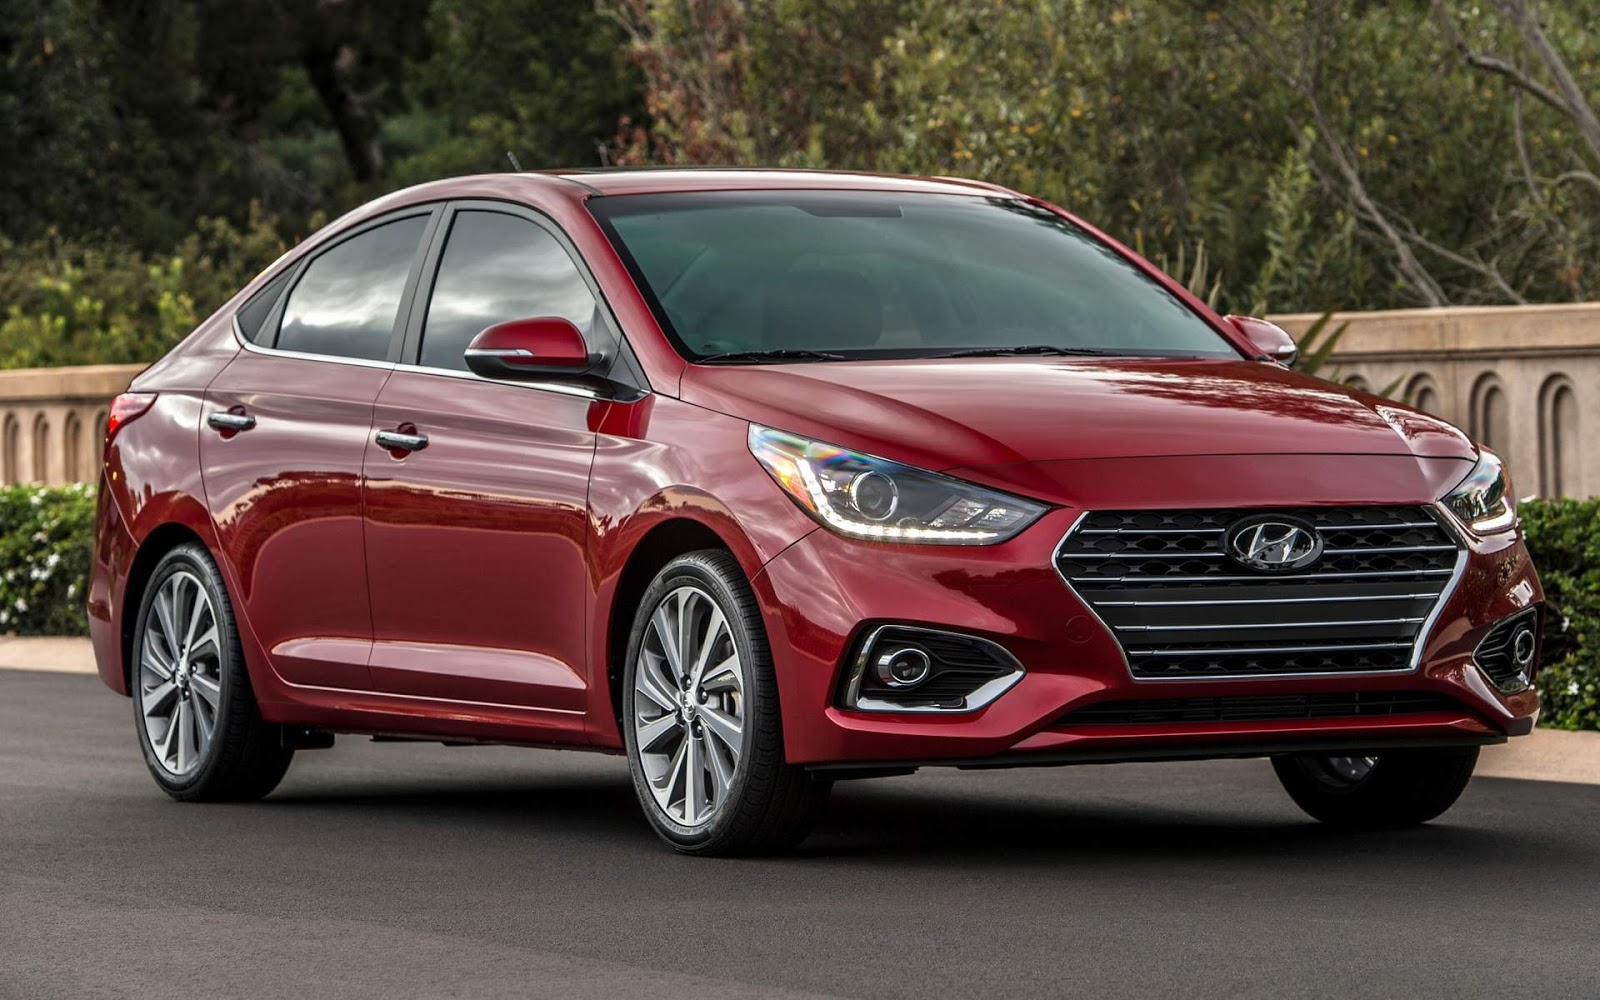 hyundai accent 2018 fotos e especifica es oficiais eua car blog br. Black Bedroom Furniture Sets. Home Design Ideas